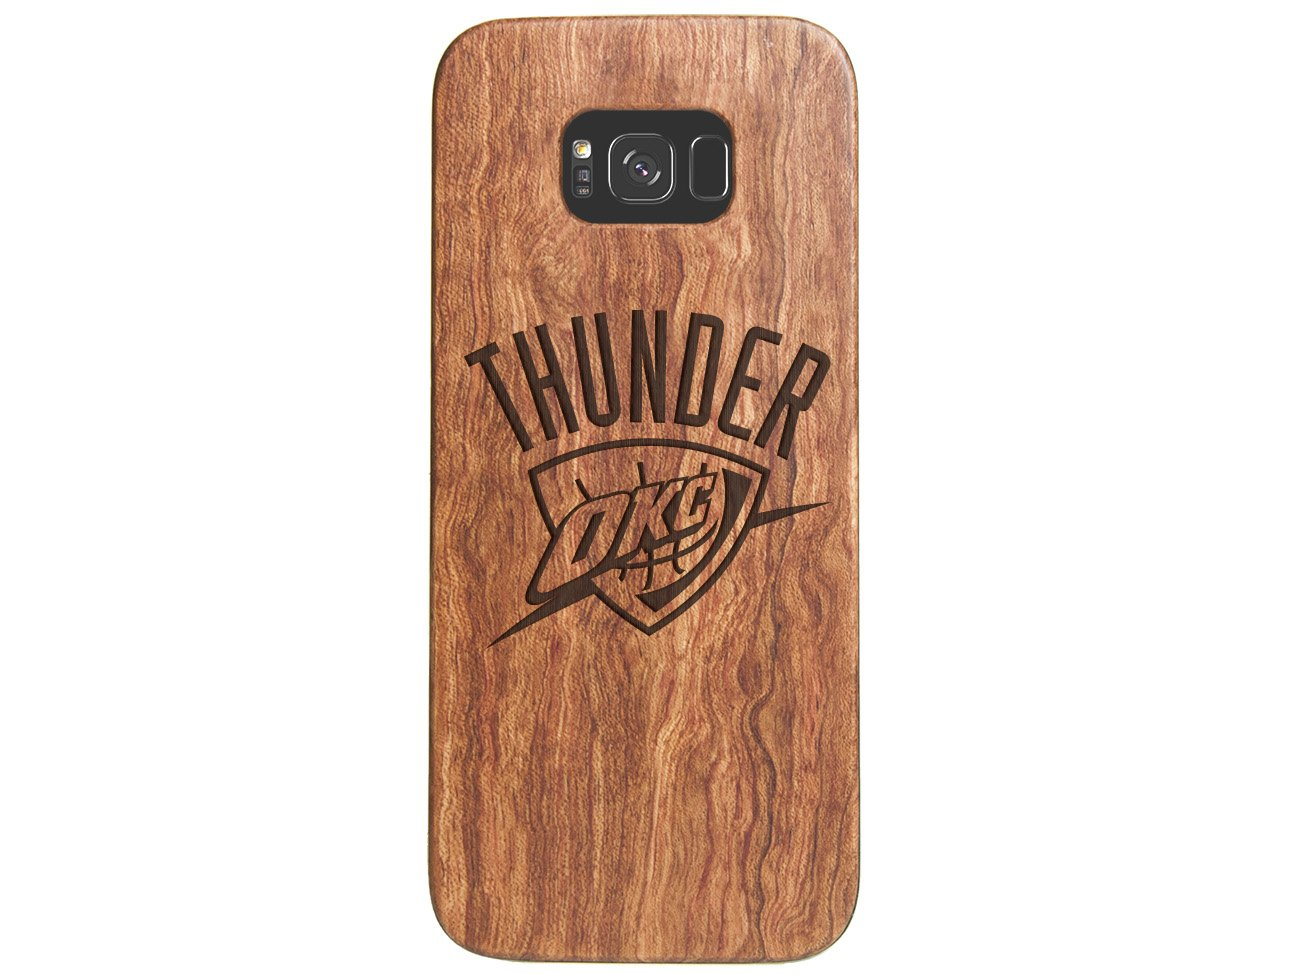 Okc Thunder Galaxy S8 Case Wood Galaxy S8 Cover All